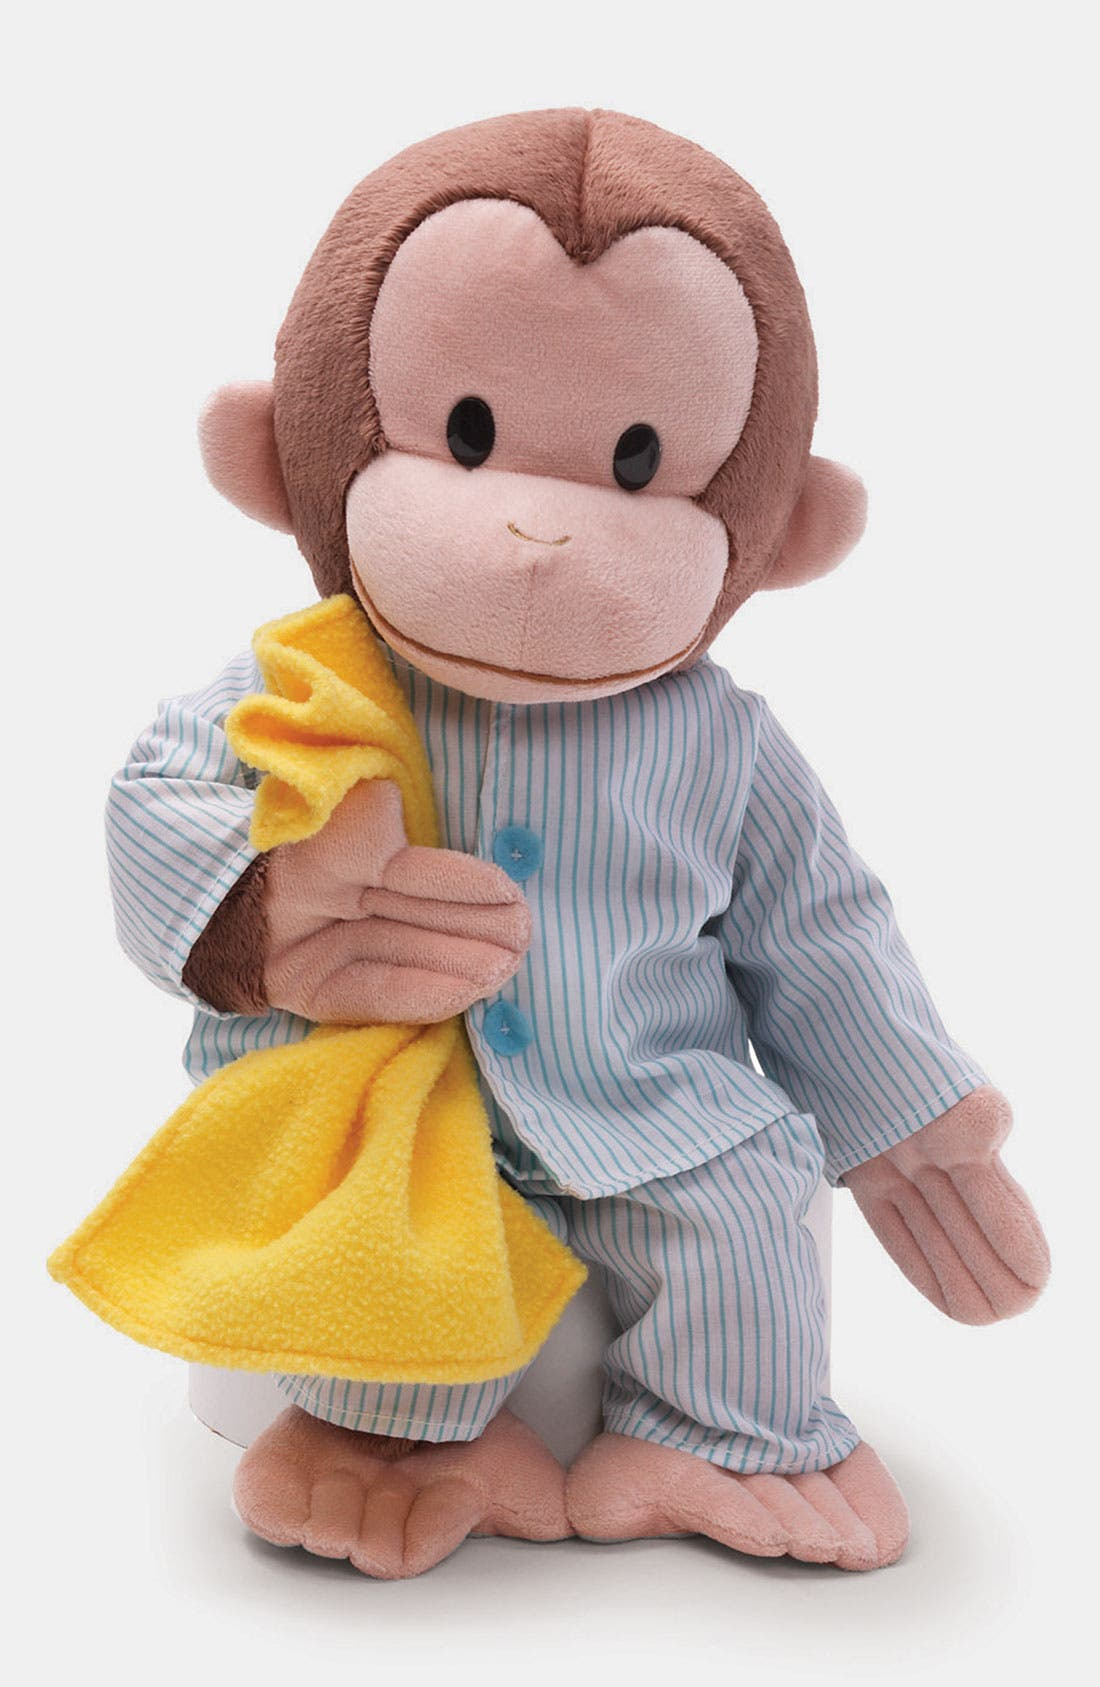 Alternate Image 1 Selected - Gund 'Sleepy Curious George™' Stuffed Animal